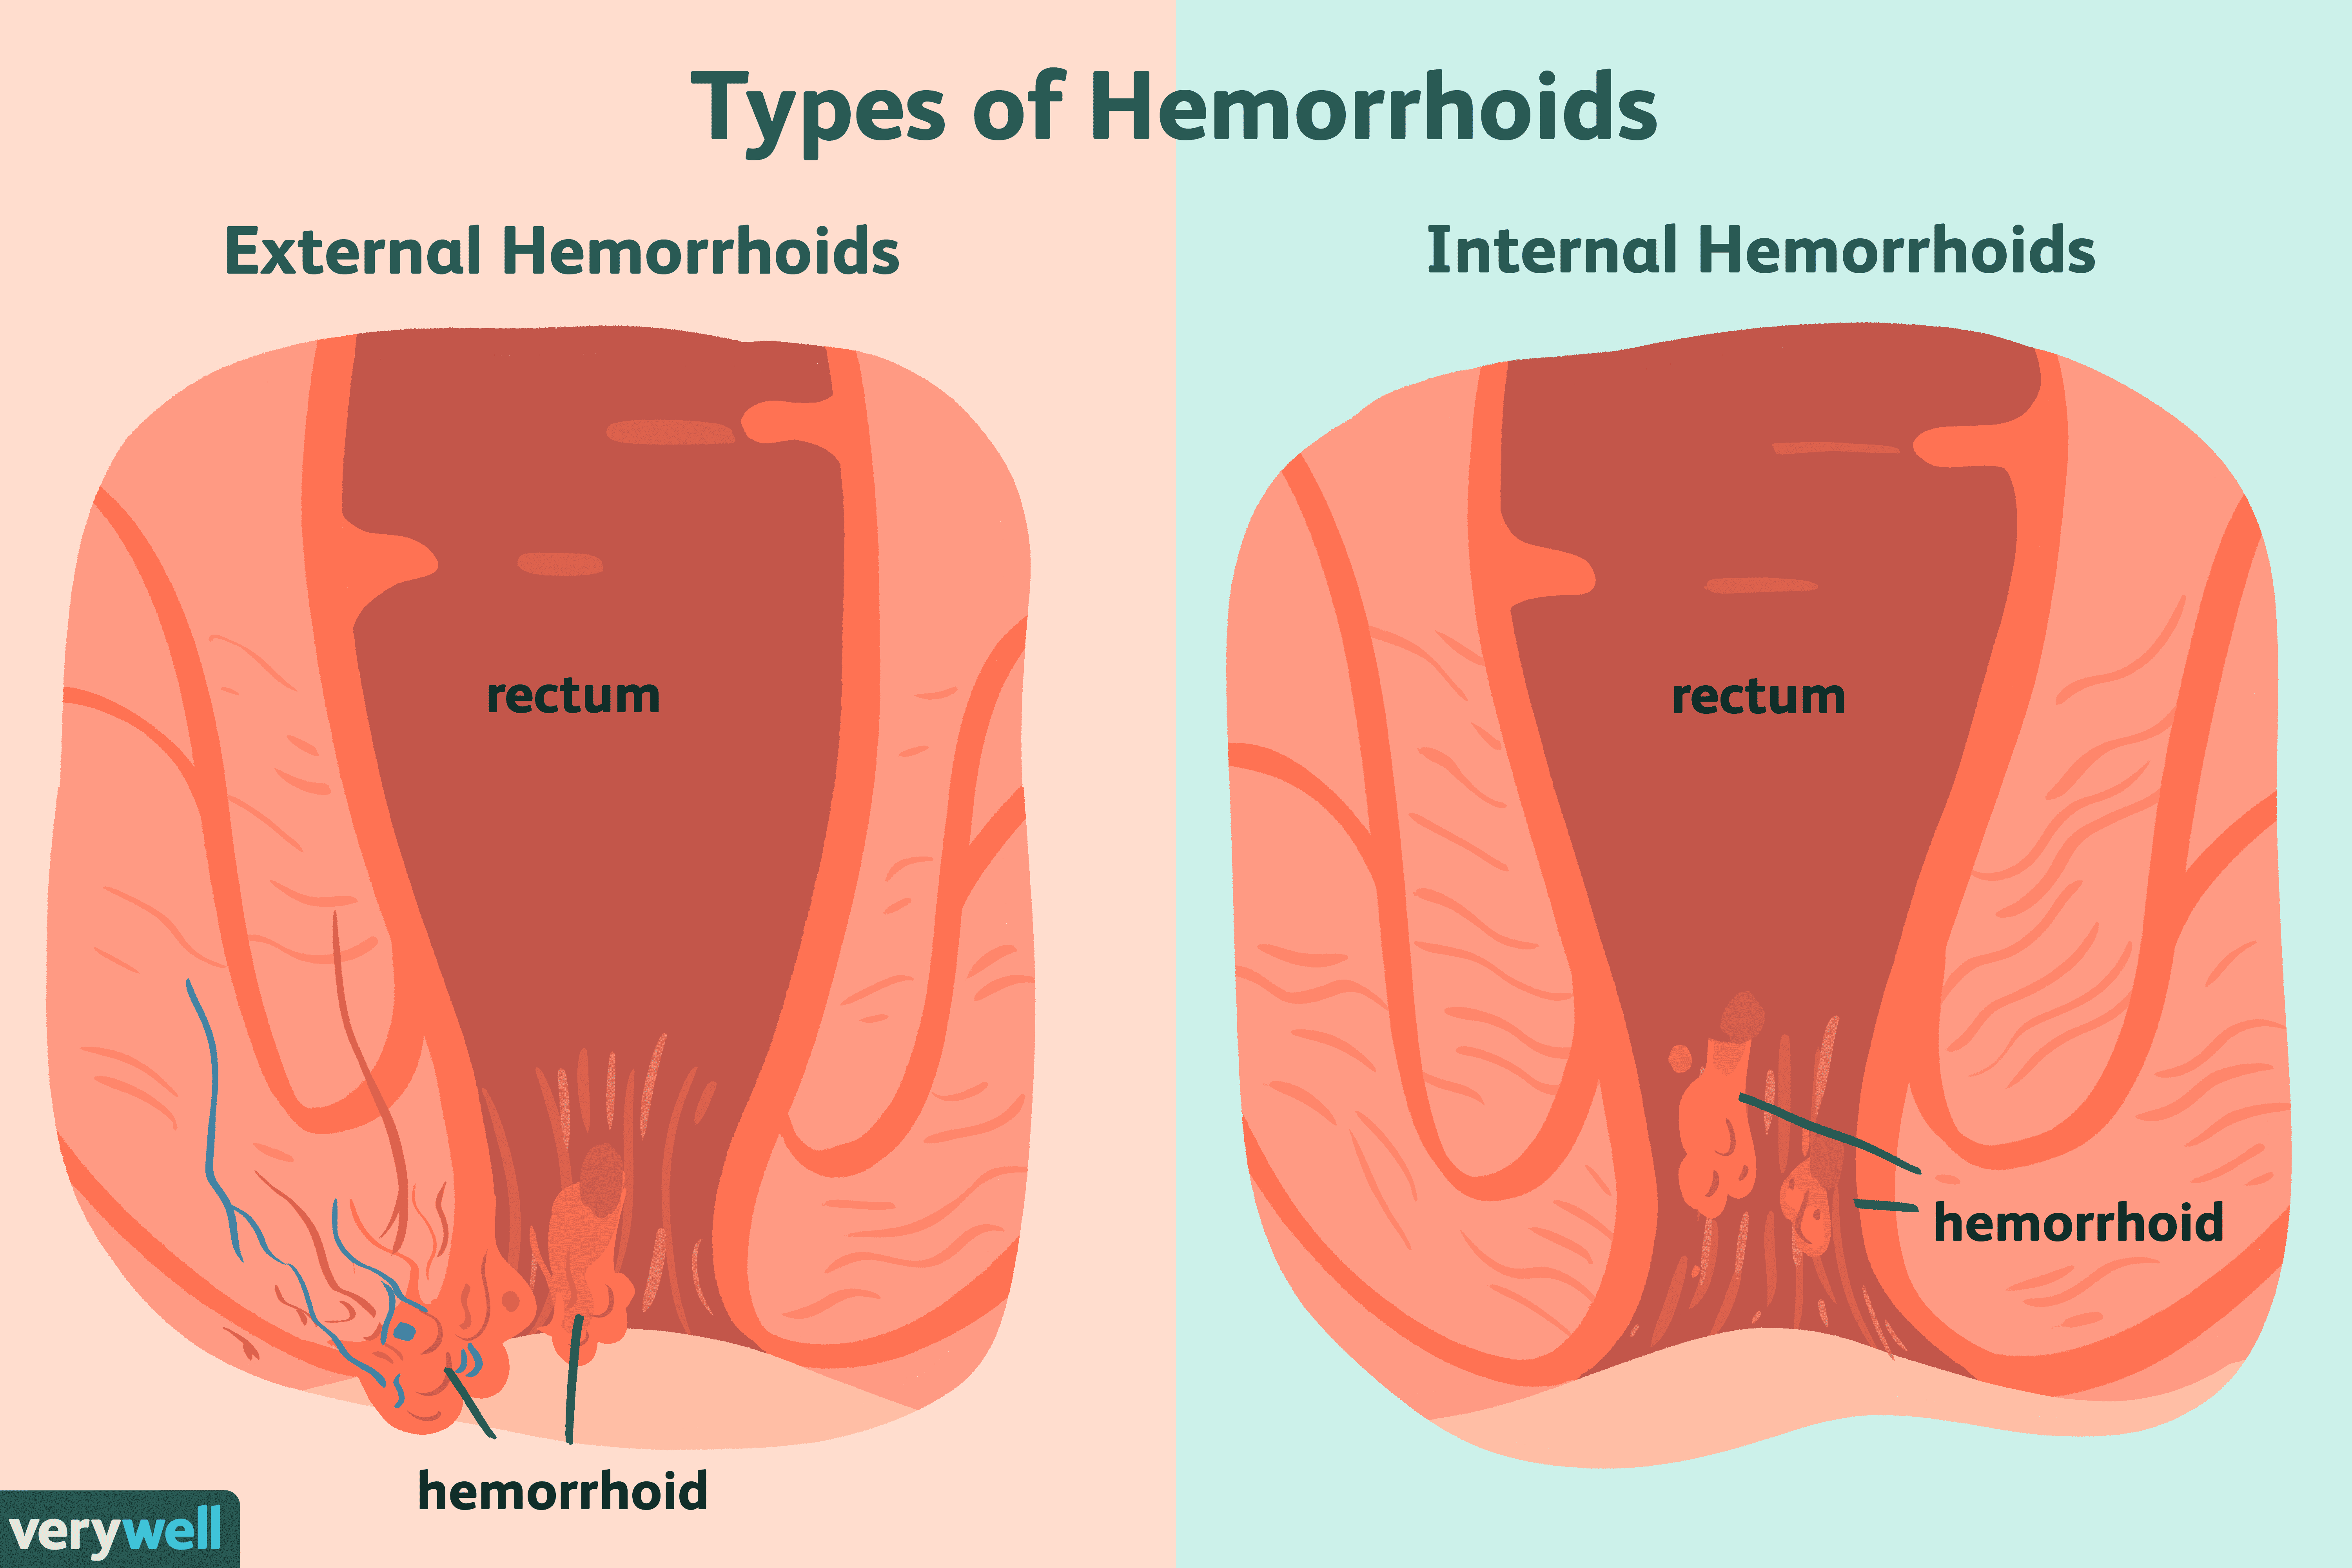 Hemorrhoids: Symptoms, Causes, Diagnosis, Treatment, and Coping